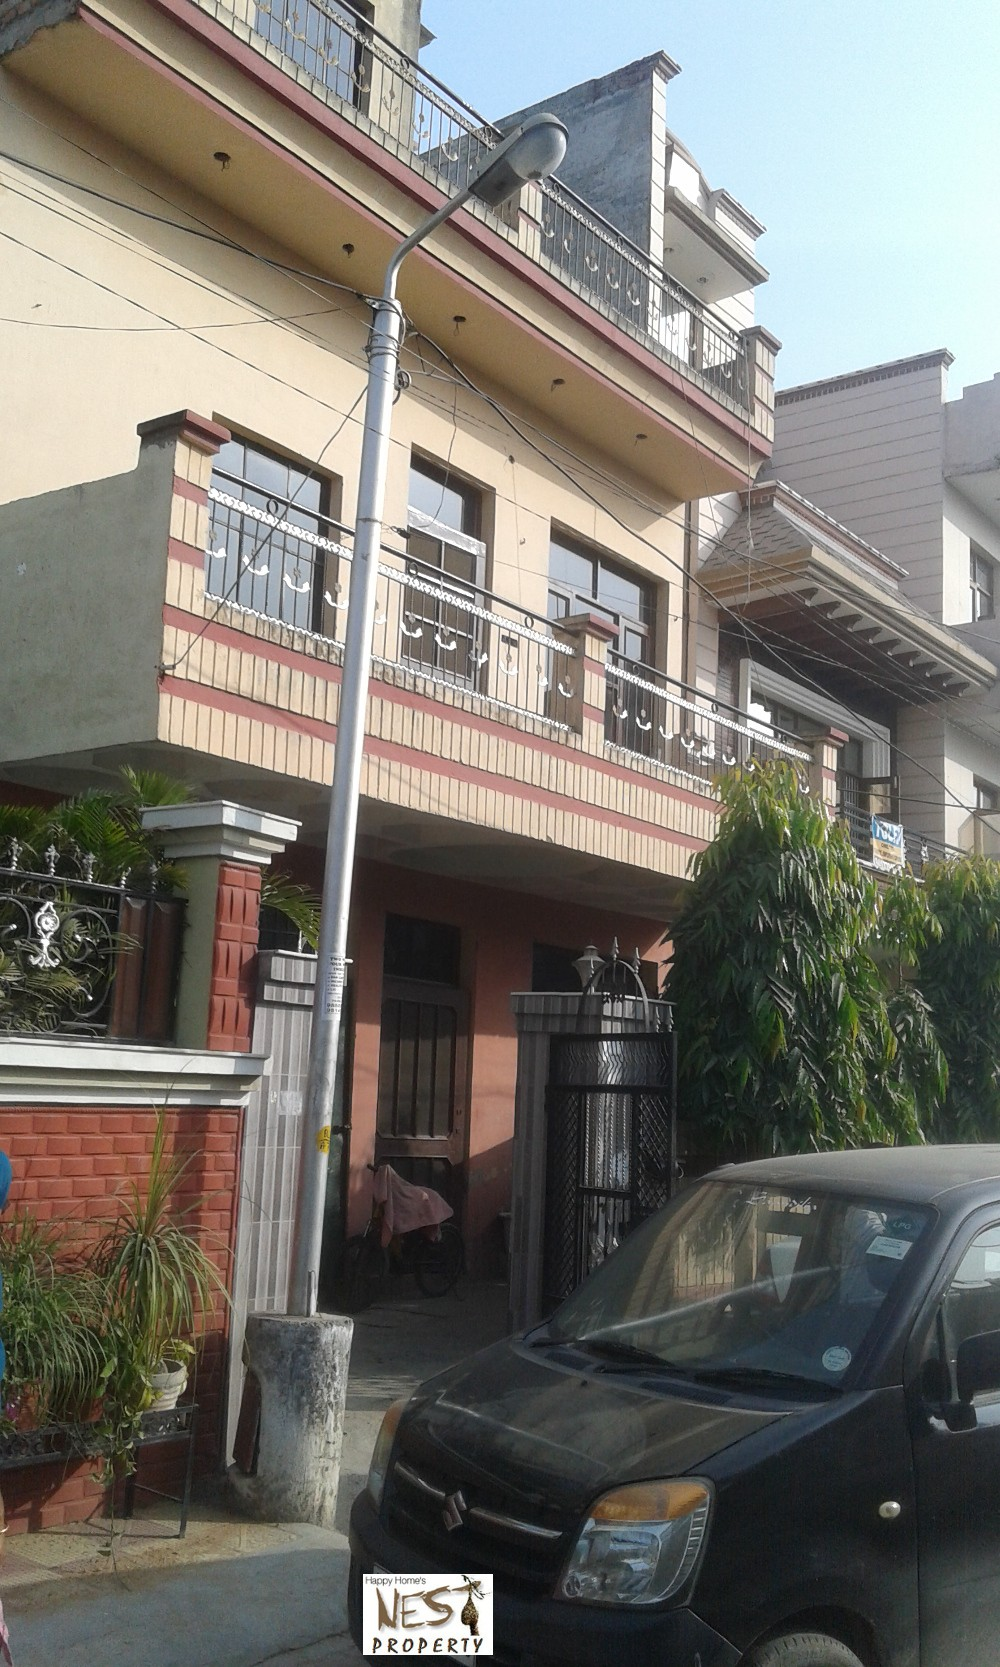 Property in zirakpur, Independent House for sale in zirakpur ,200 sy. @ 65 Lac In Hem Vihar Baltana M.C Zirakpur call-9888775612 , 9888777712